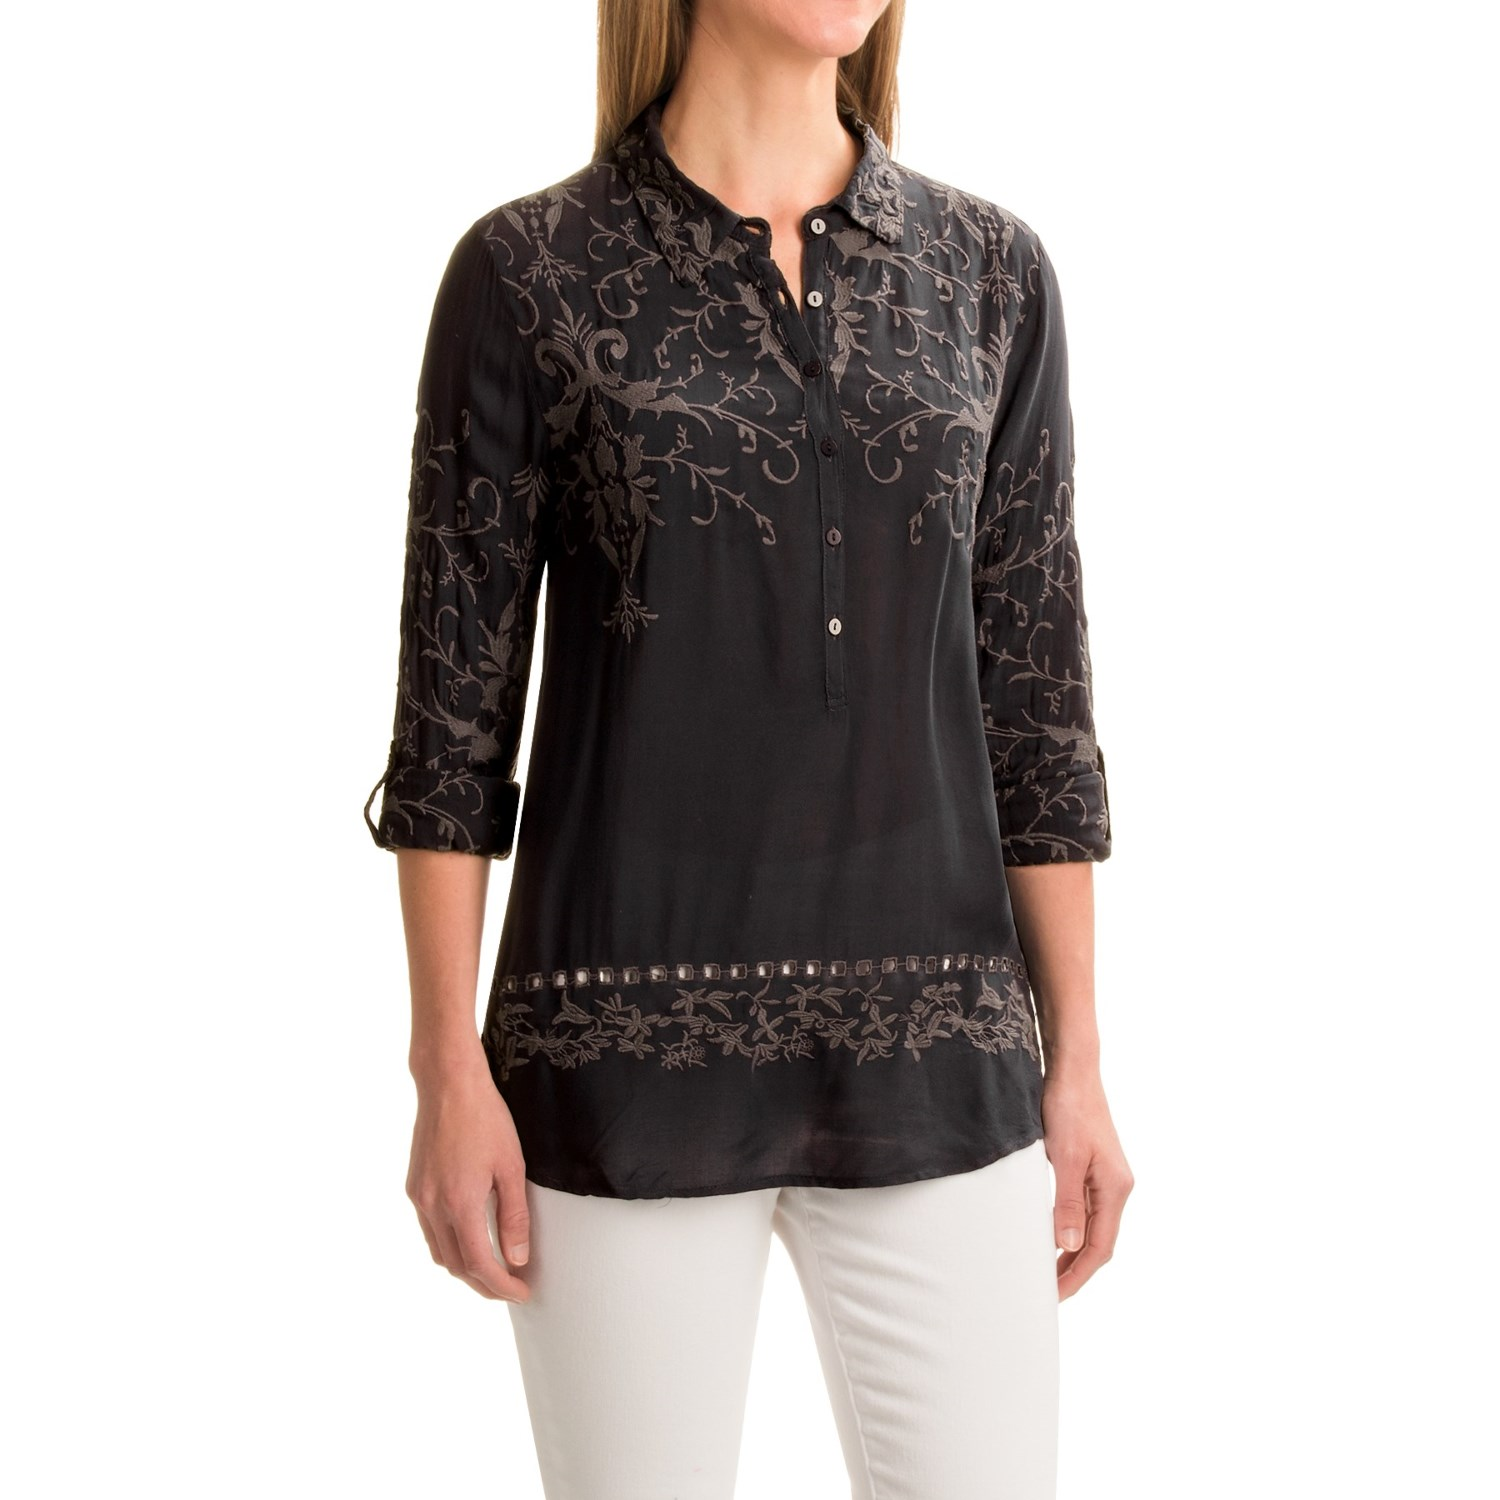 dylan Romantic Embroidered Tunic Shirt (For Women) - Save 74%